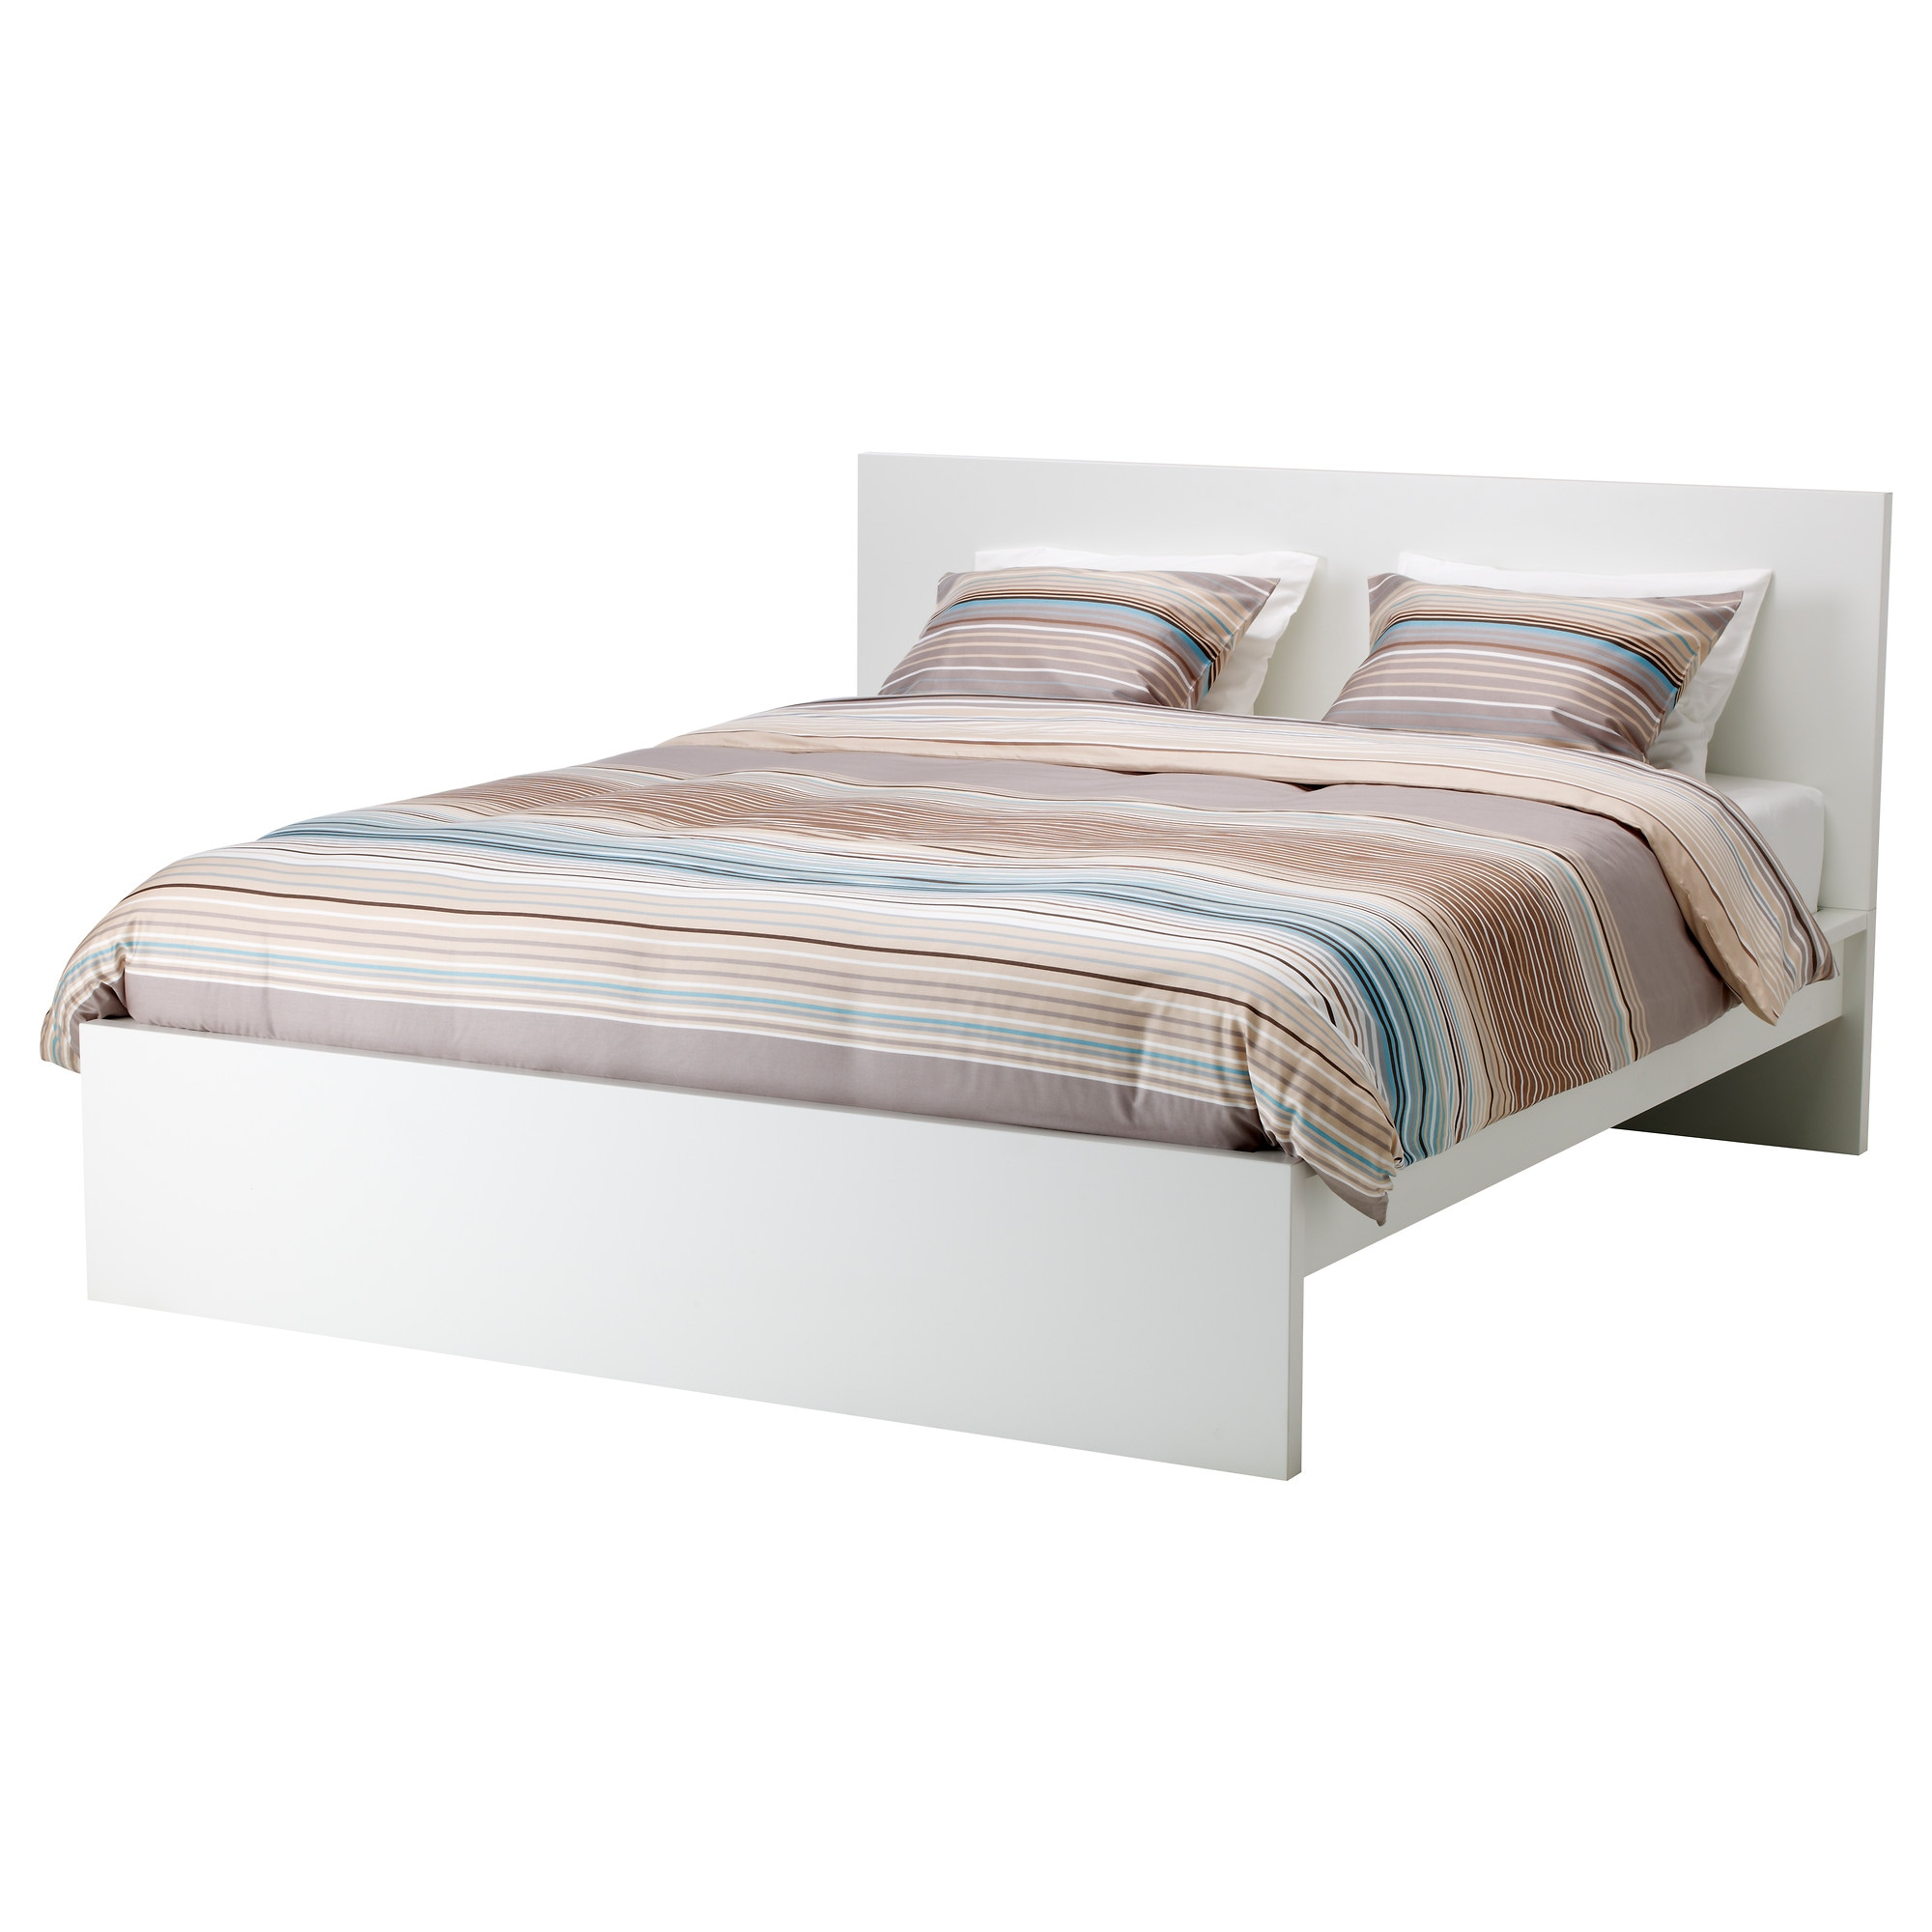 Uncategorized Queen Bed Double Bed malm bed frame high full ikea